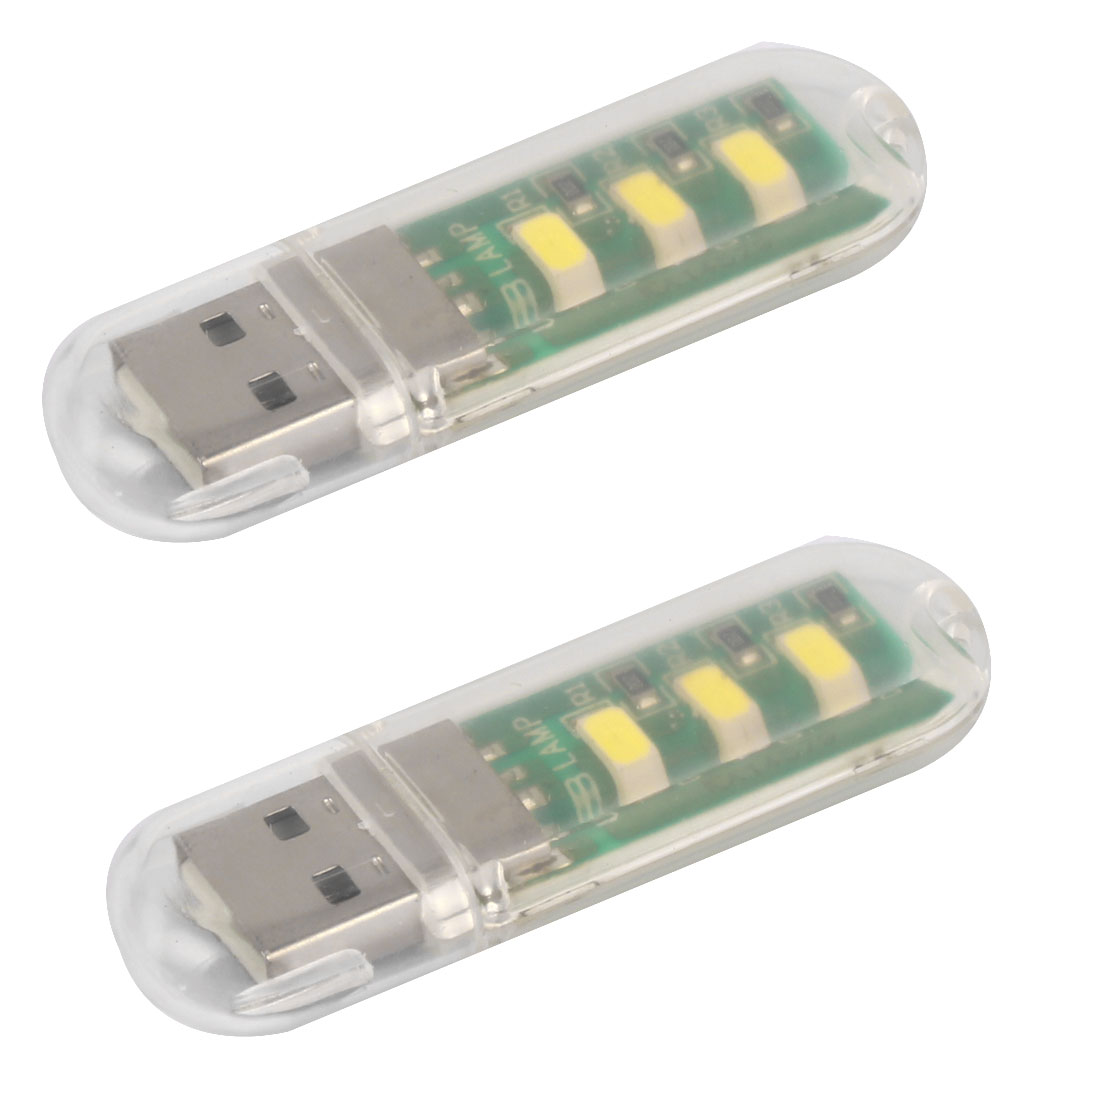 Laptops USB LED Night Light Bright Reading Bulb Camping Lamp 2pcs